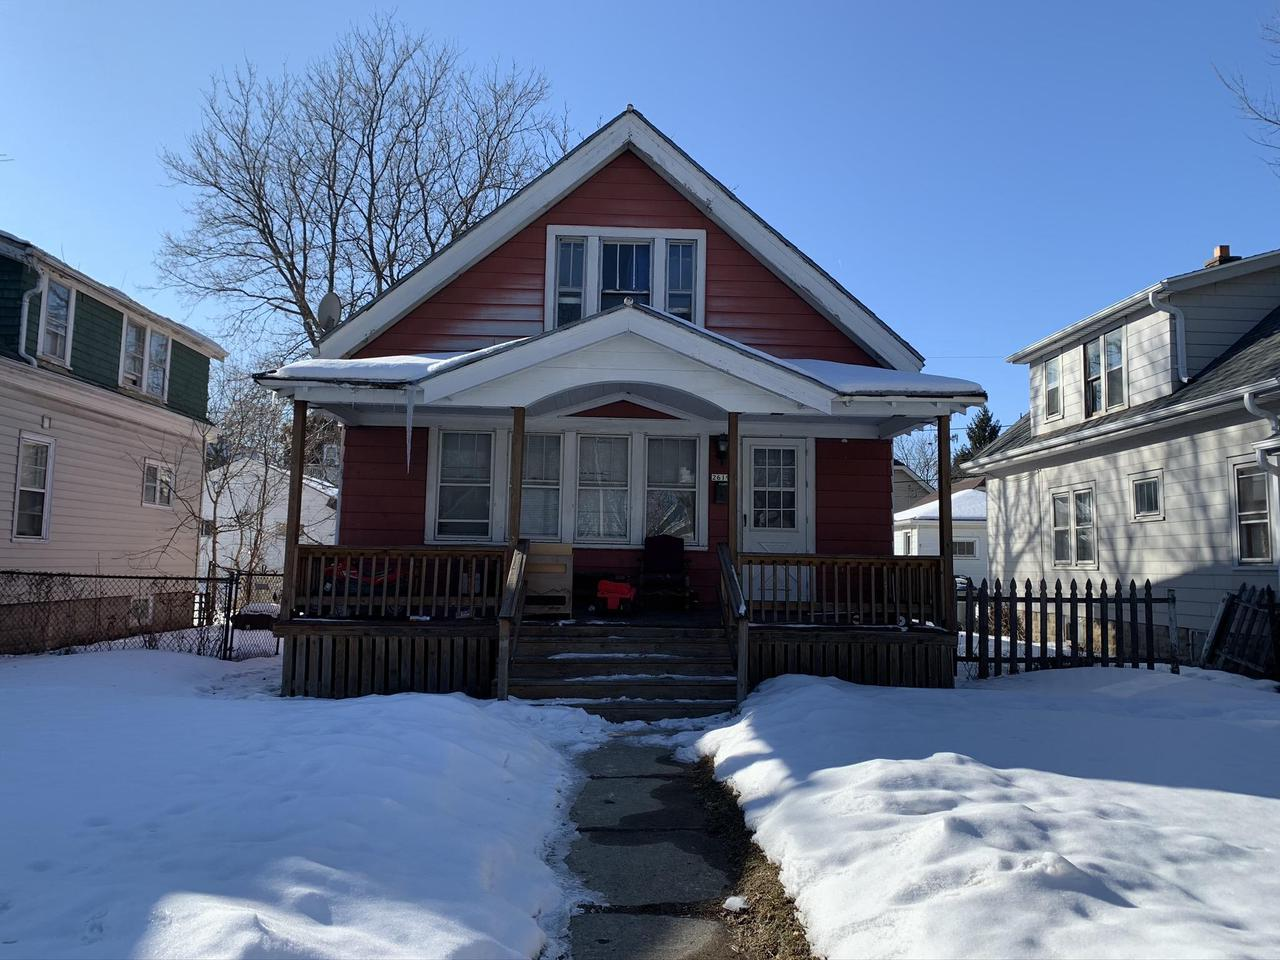 Attractive single-family home with large front porch. It would be great for owner occupancy, as well as rented out. Currently there is a tenant on lease until 6/24/2020 and would like to stay. Current rent is $600, which is low. There is parking in back off the alley.  NEW ROOF AND GUTTERS WERE JUST INSTALLED. Property is sold as is. Schedule you showing today!